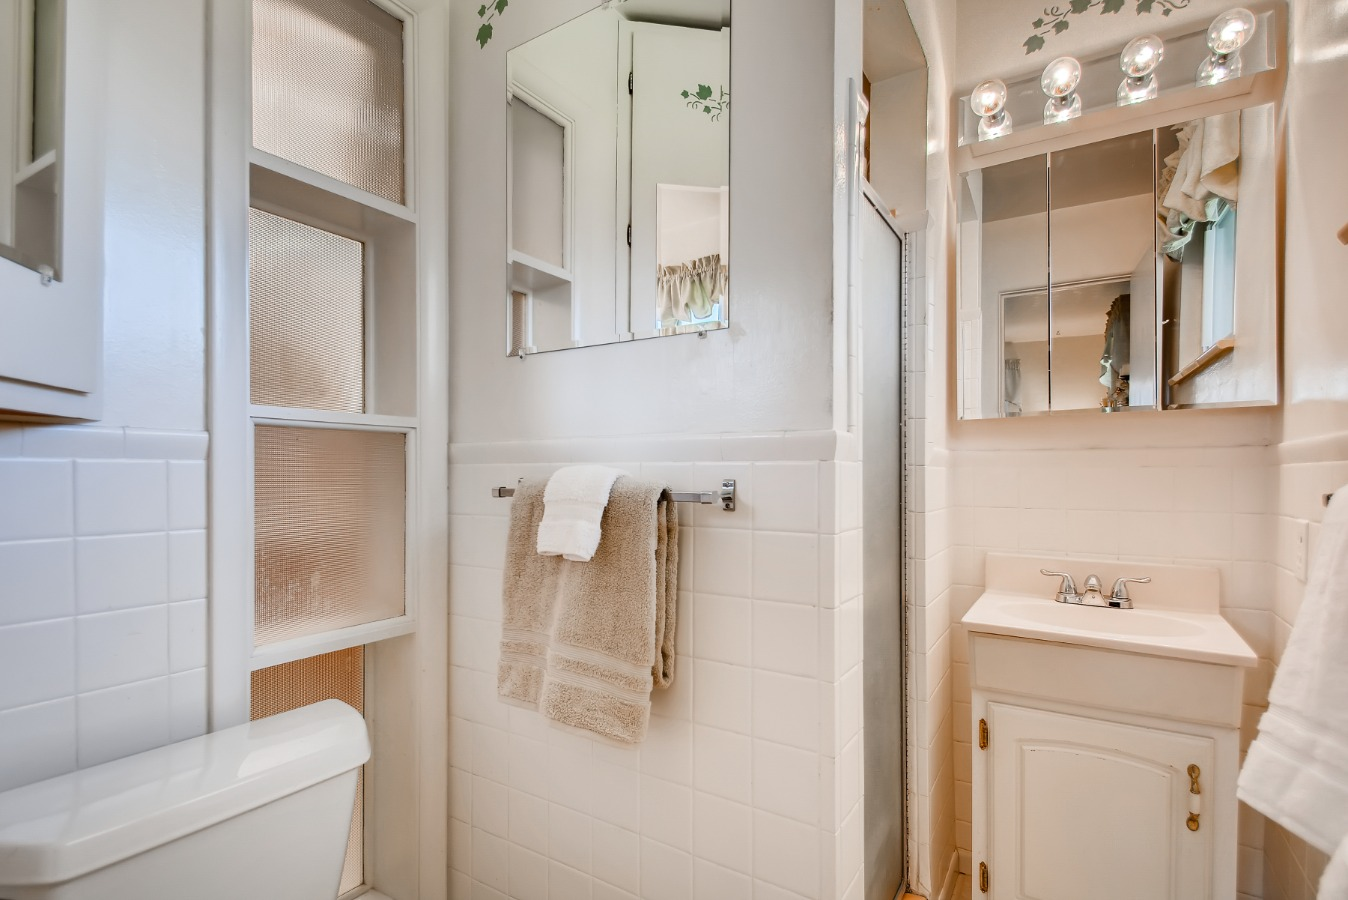 The Privacy of Master Bath is Awesome